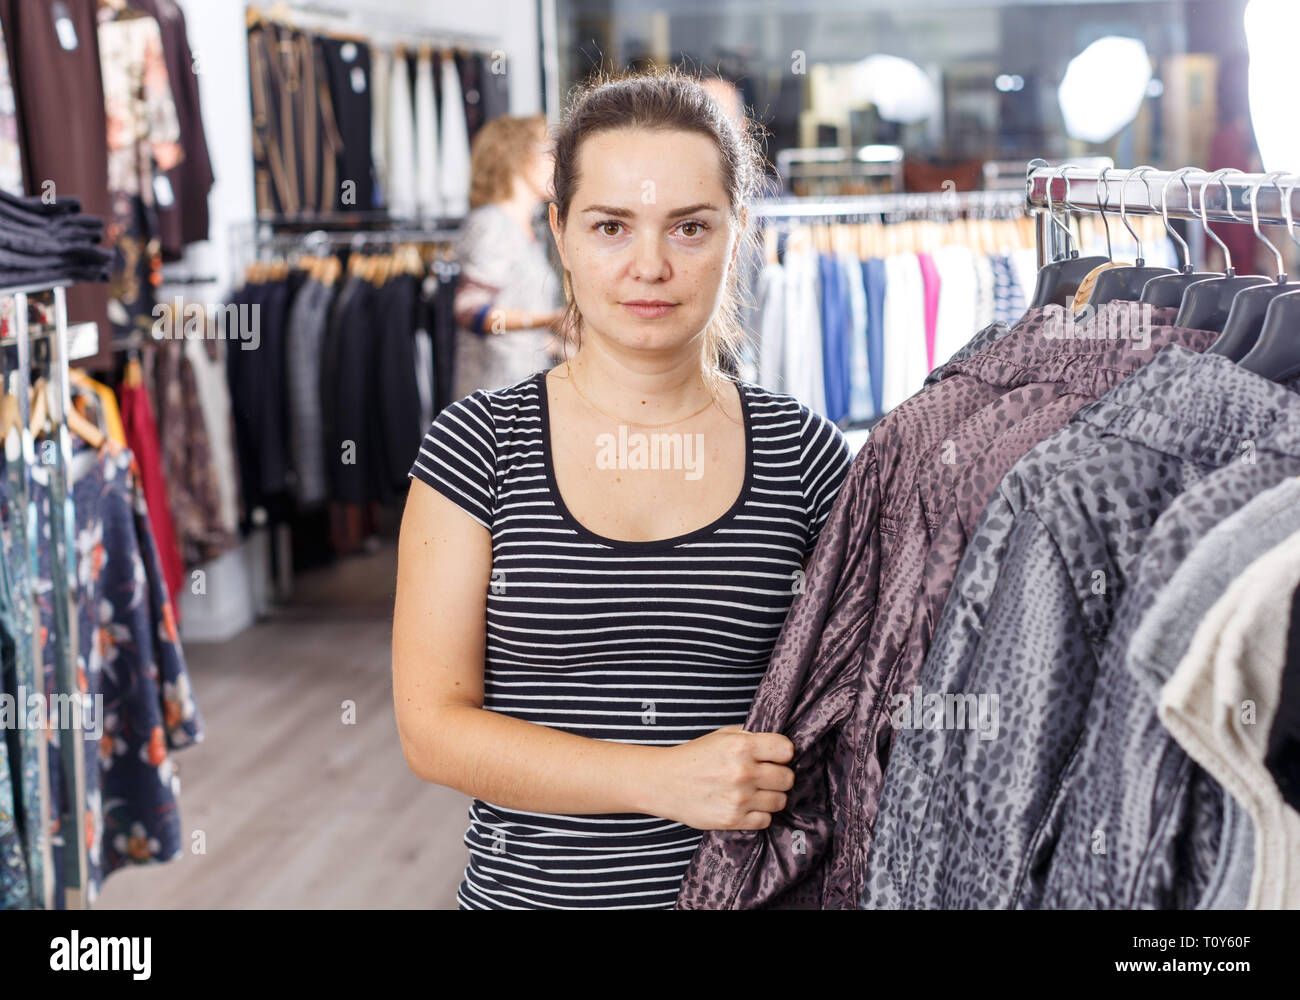 Young attractive woman choosing new overcoat in clothing store - Stock Image